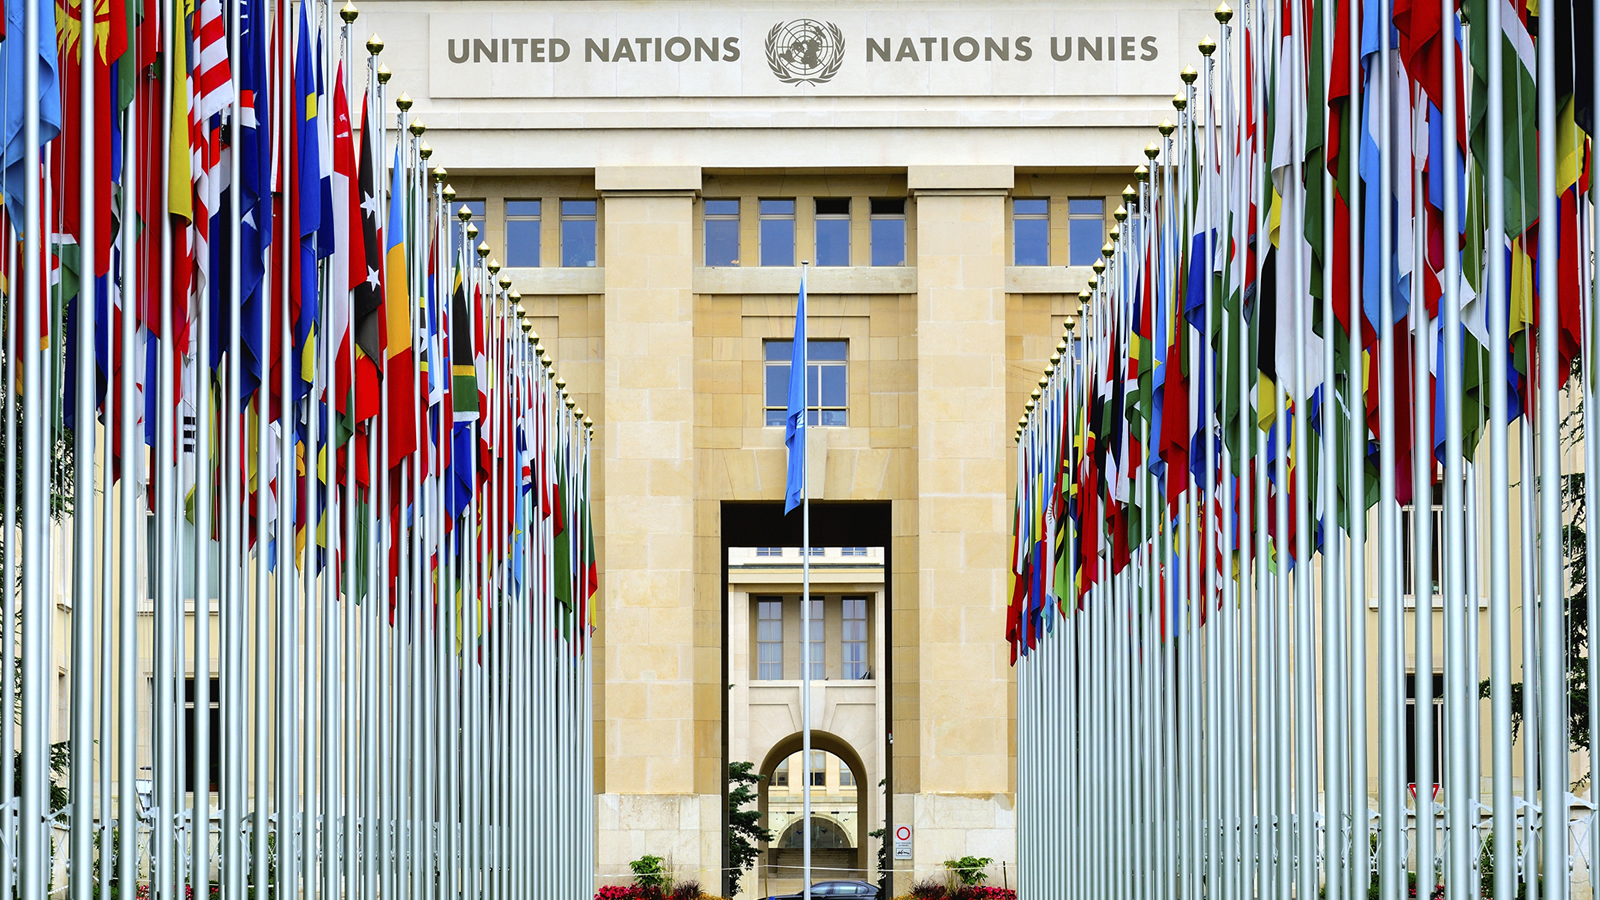 United Nations Headquarters with Flags